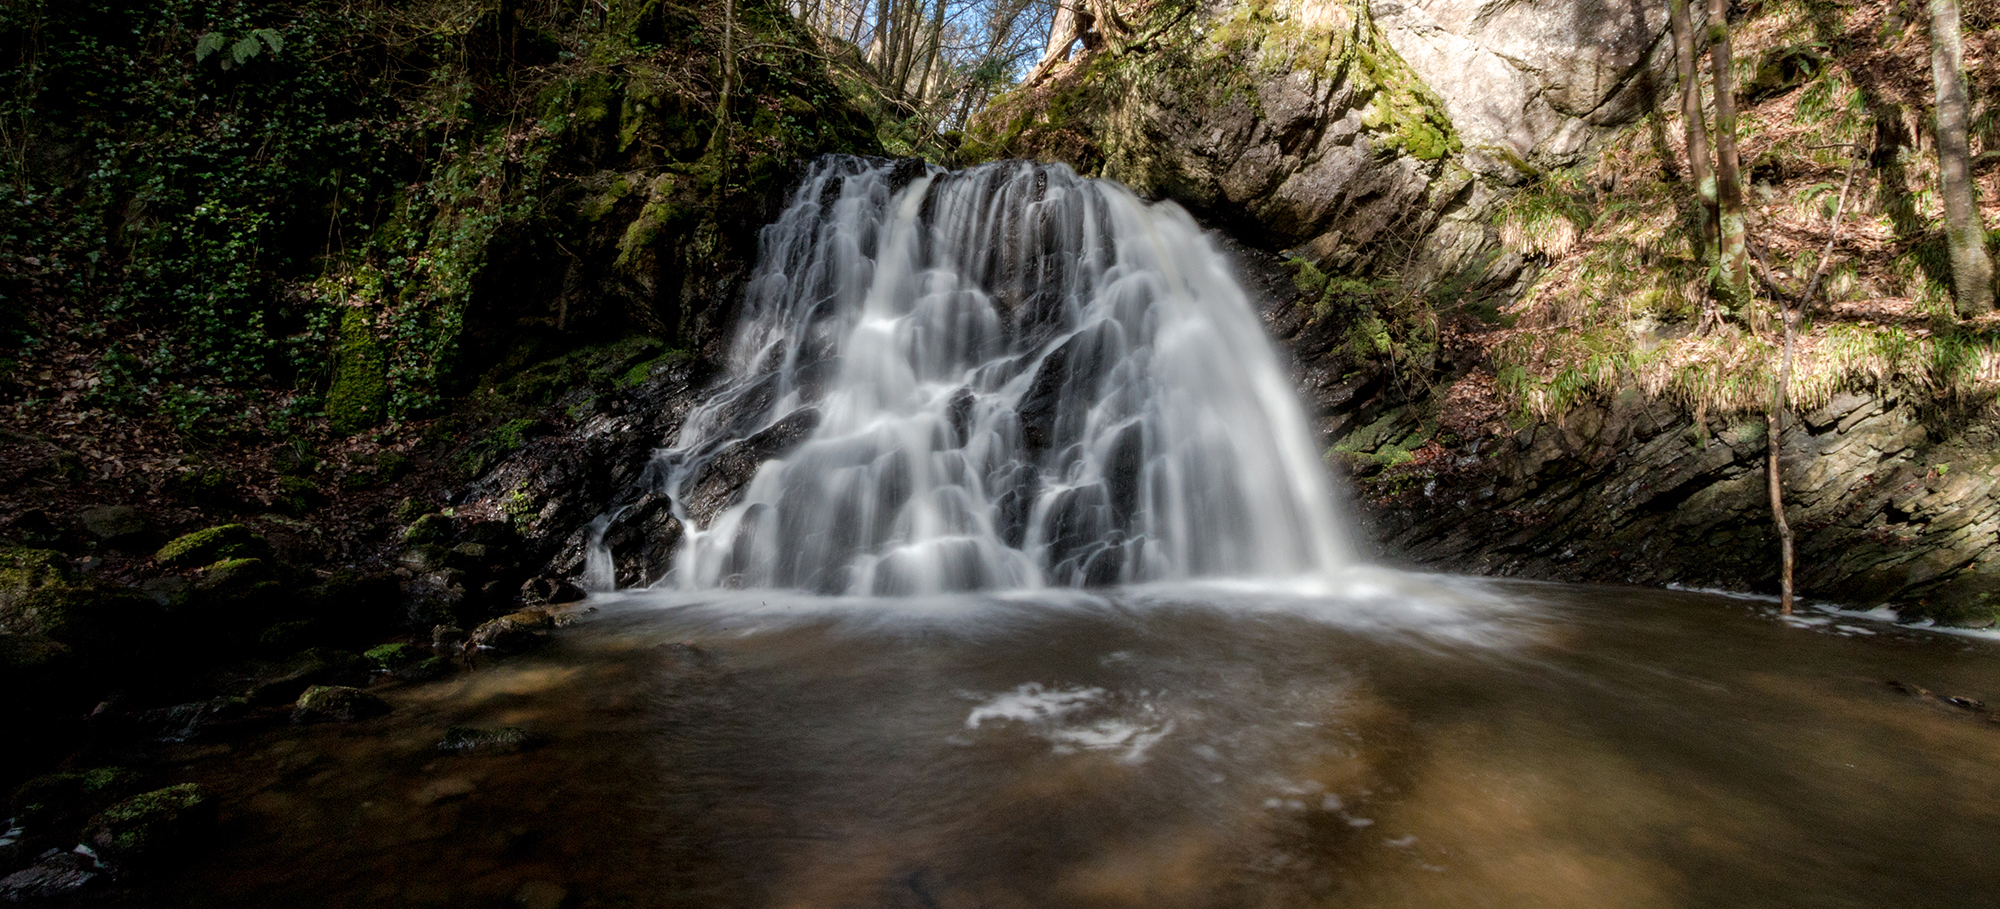 The waterfall at the Fairy Glen at Rosemarkie